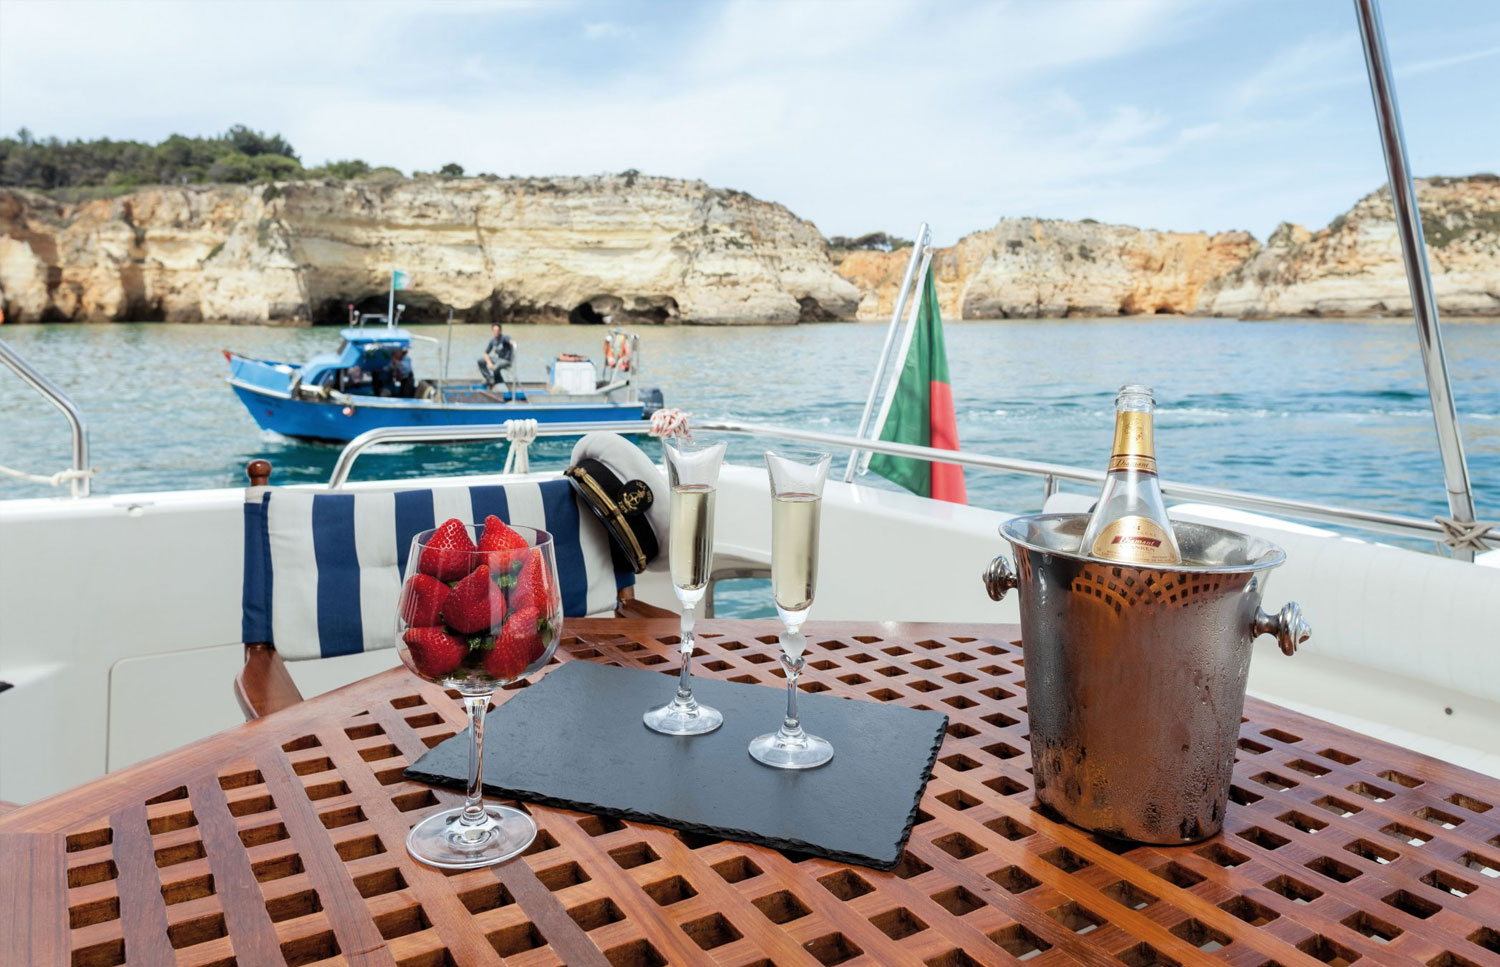 Princess 66 Luxury Yacht Charter in Algarve, Portugal